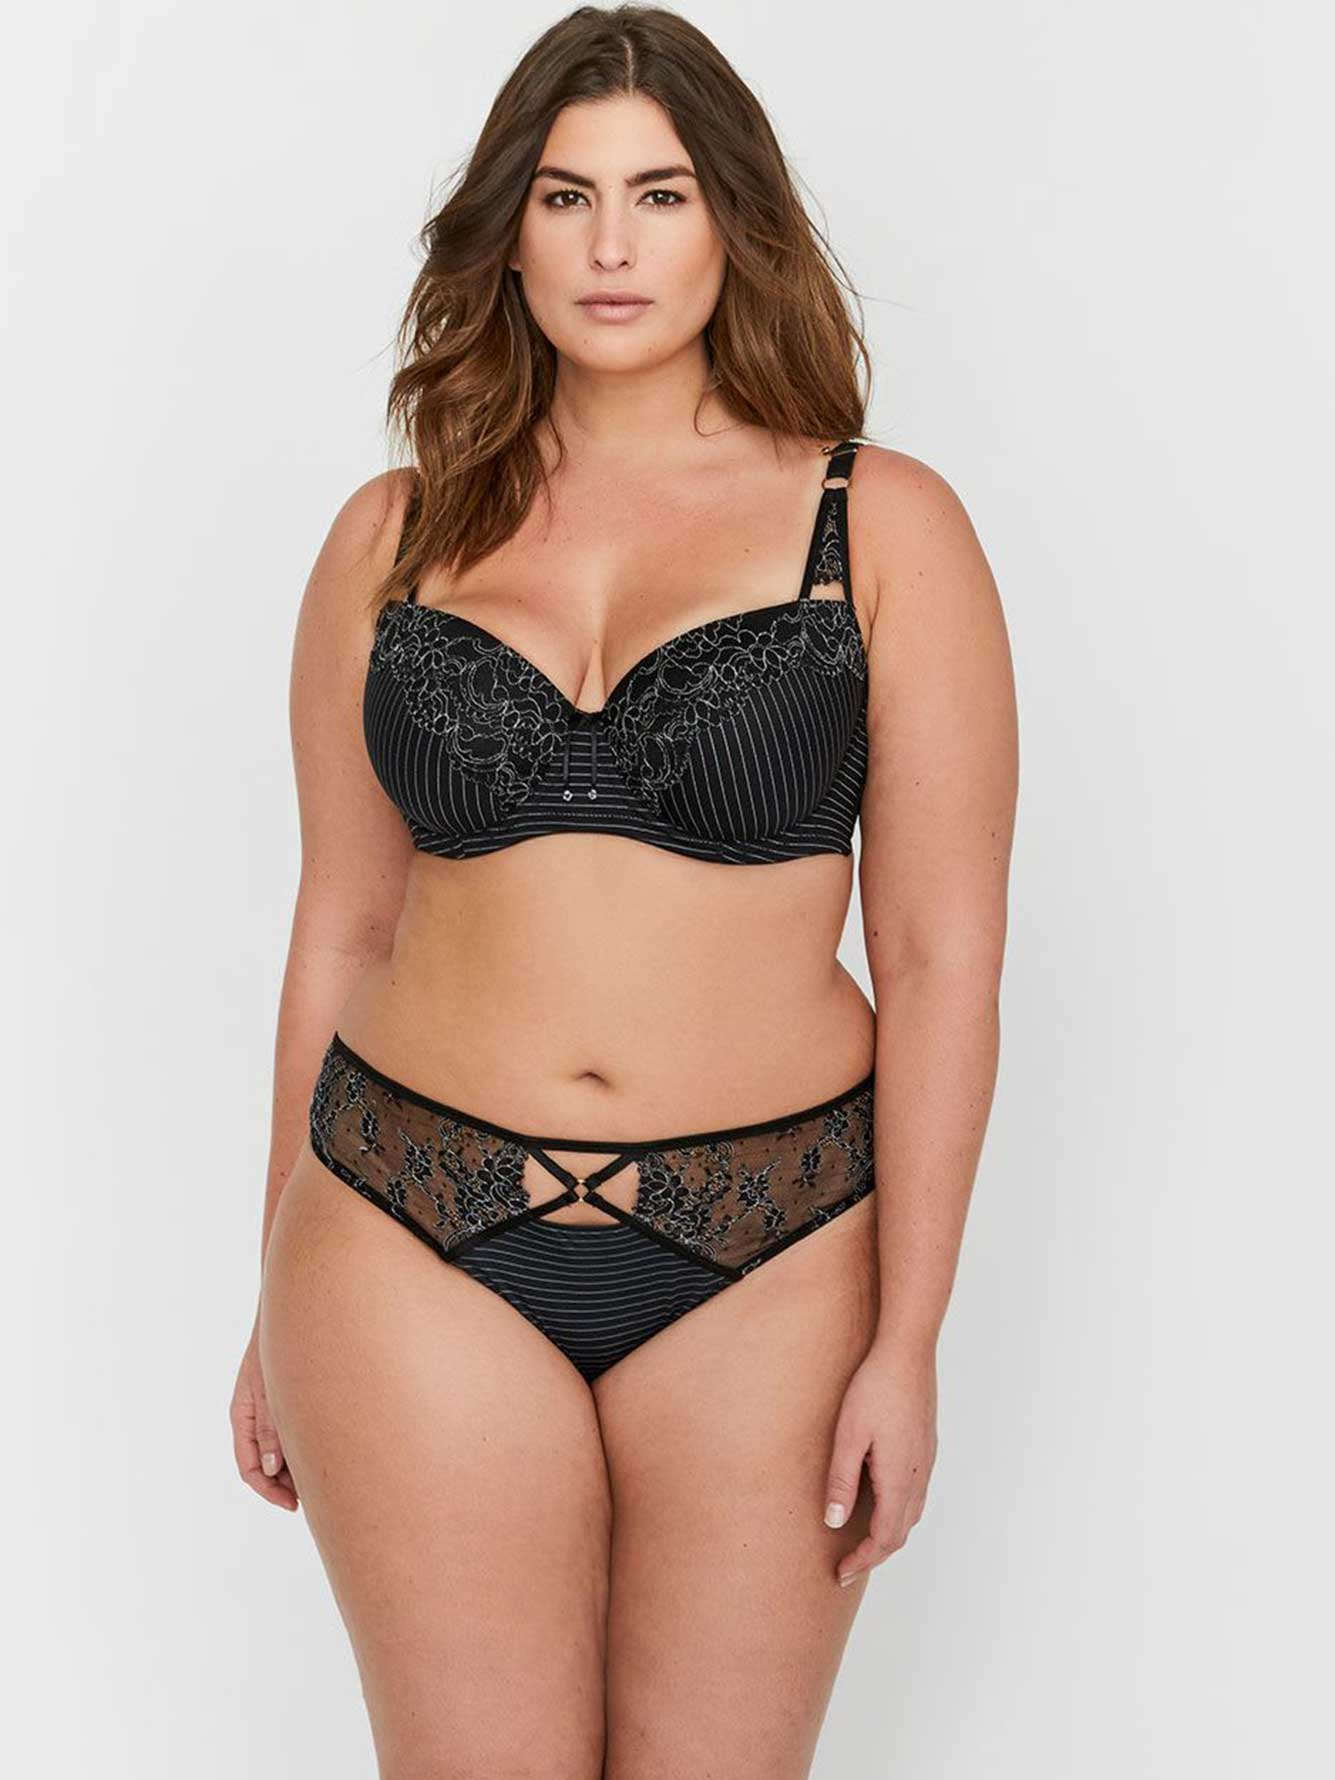 27c1d2a761b94 Ashley Graham Essentials Lace and Striped Showstopper Bra